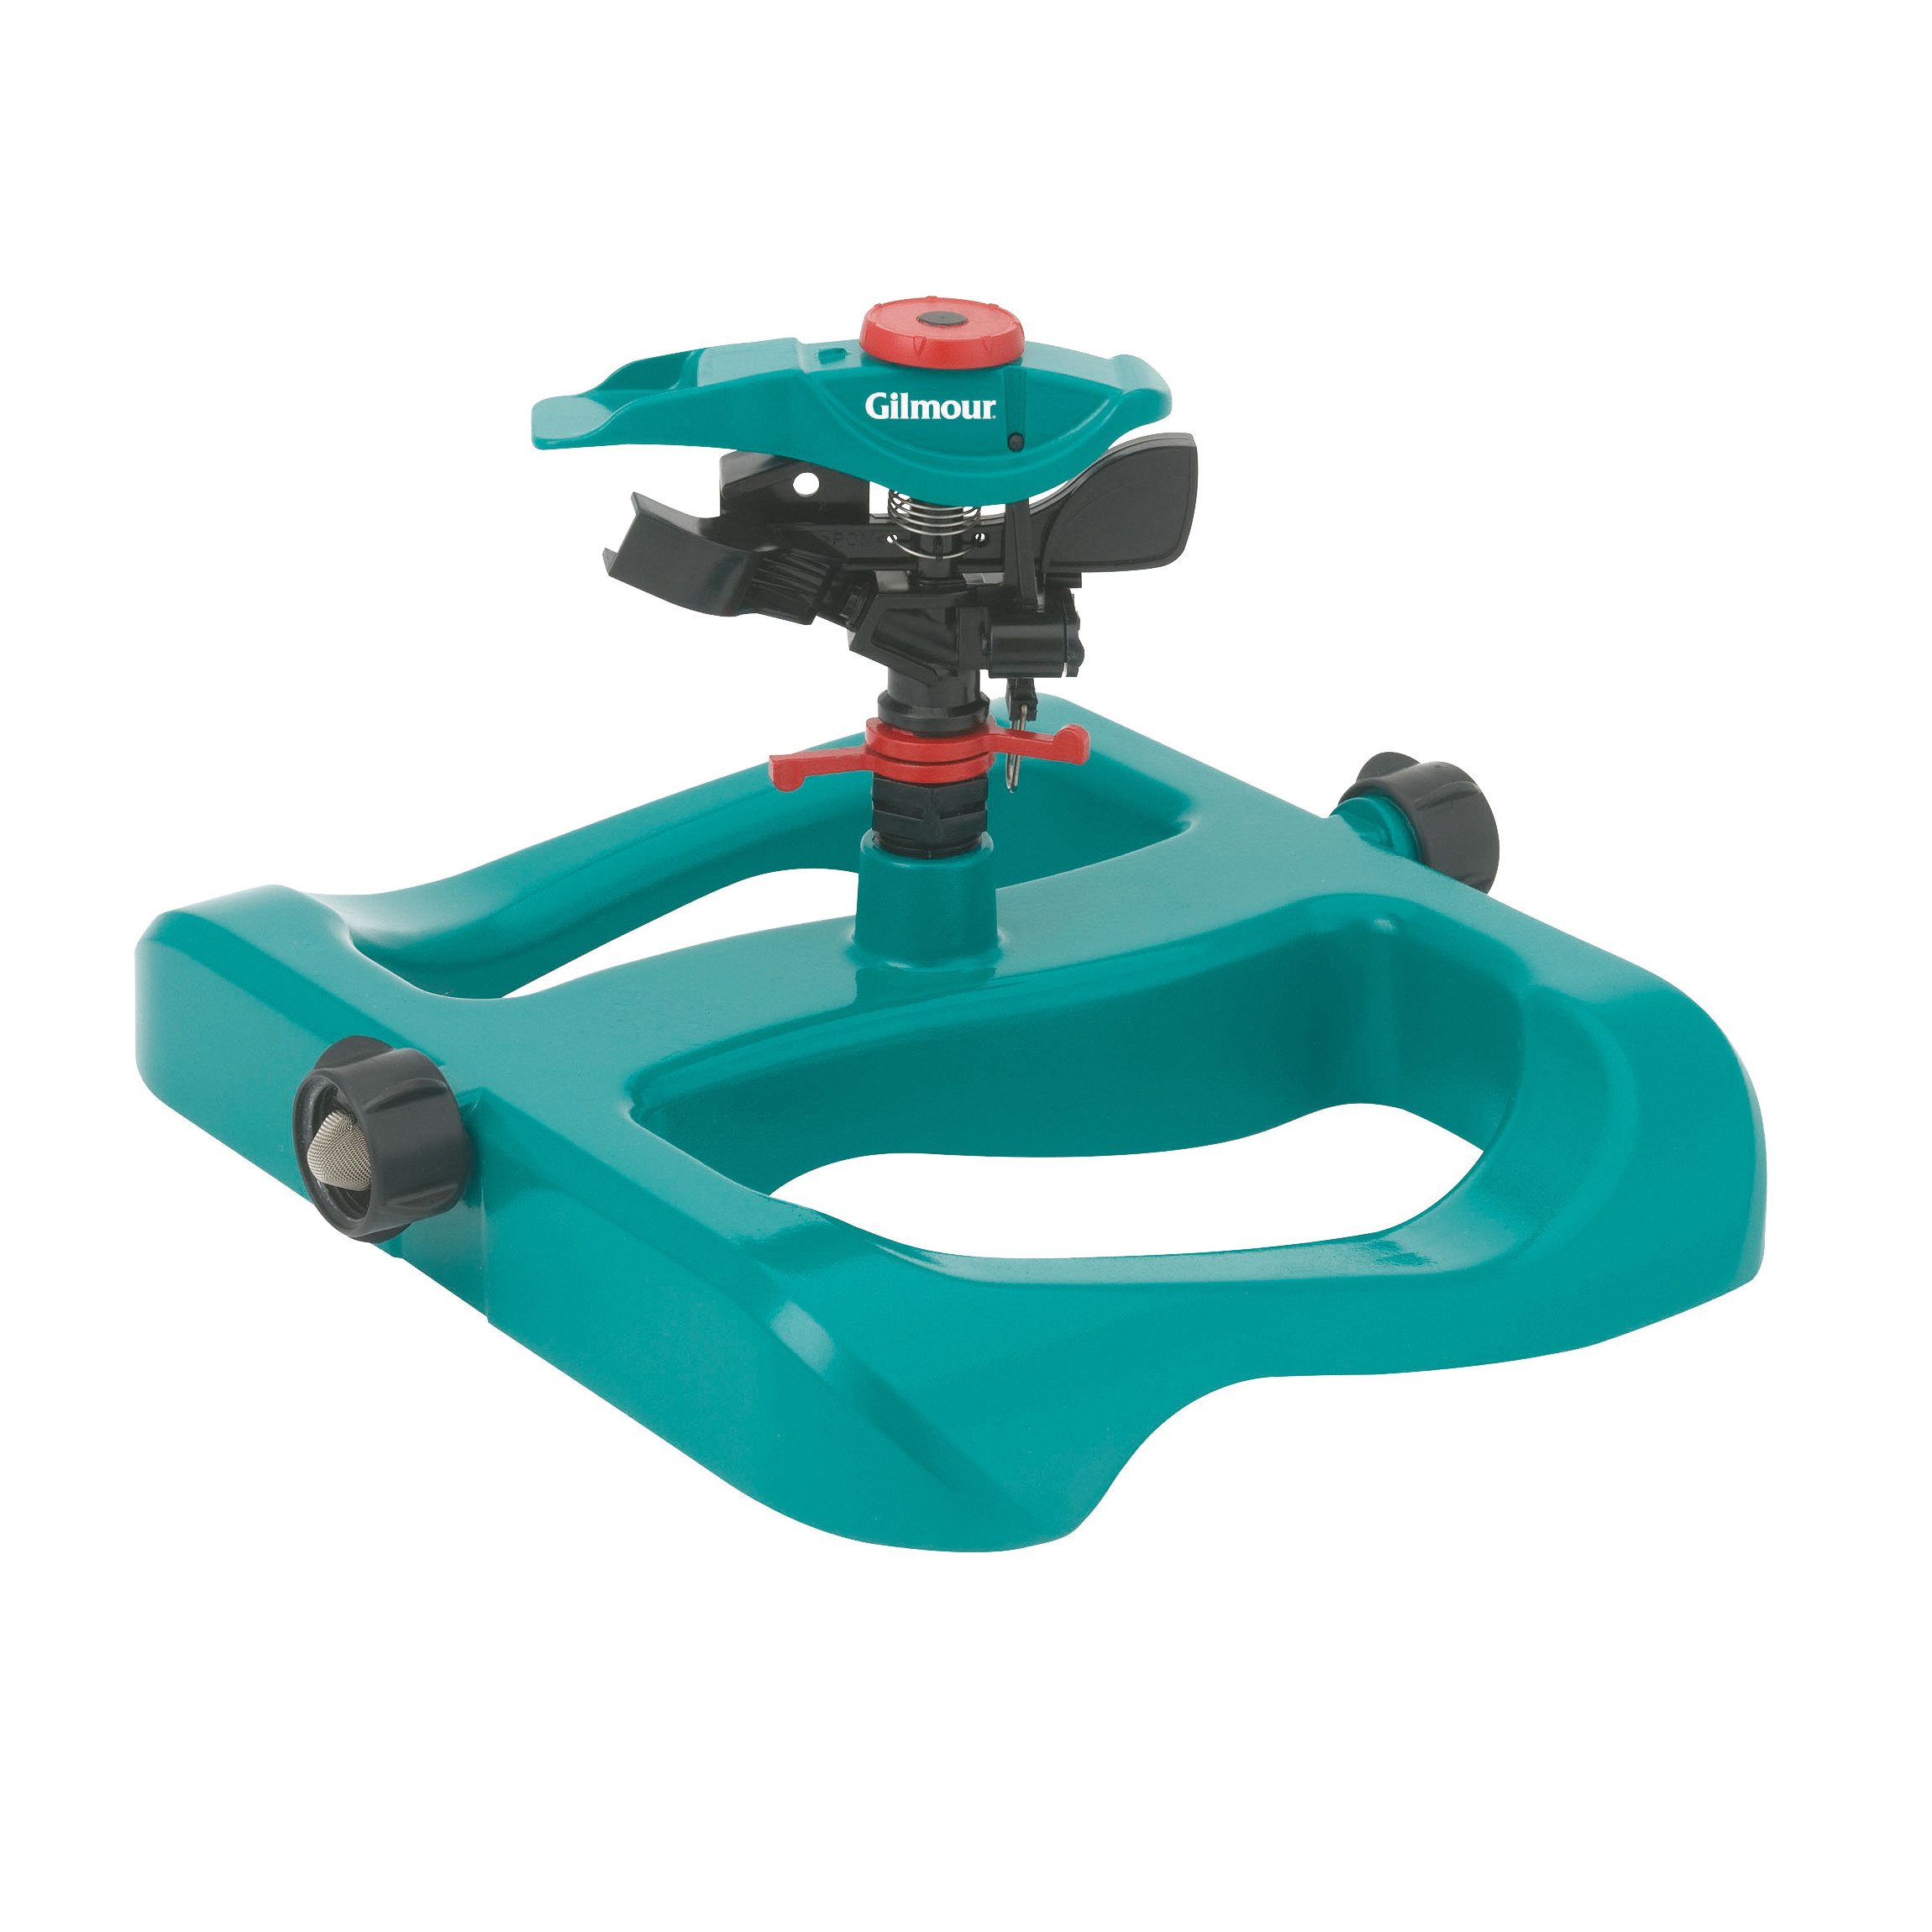 Picture of Gilmour 200GMBP Pulsating Lawn Sprinkler